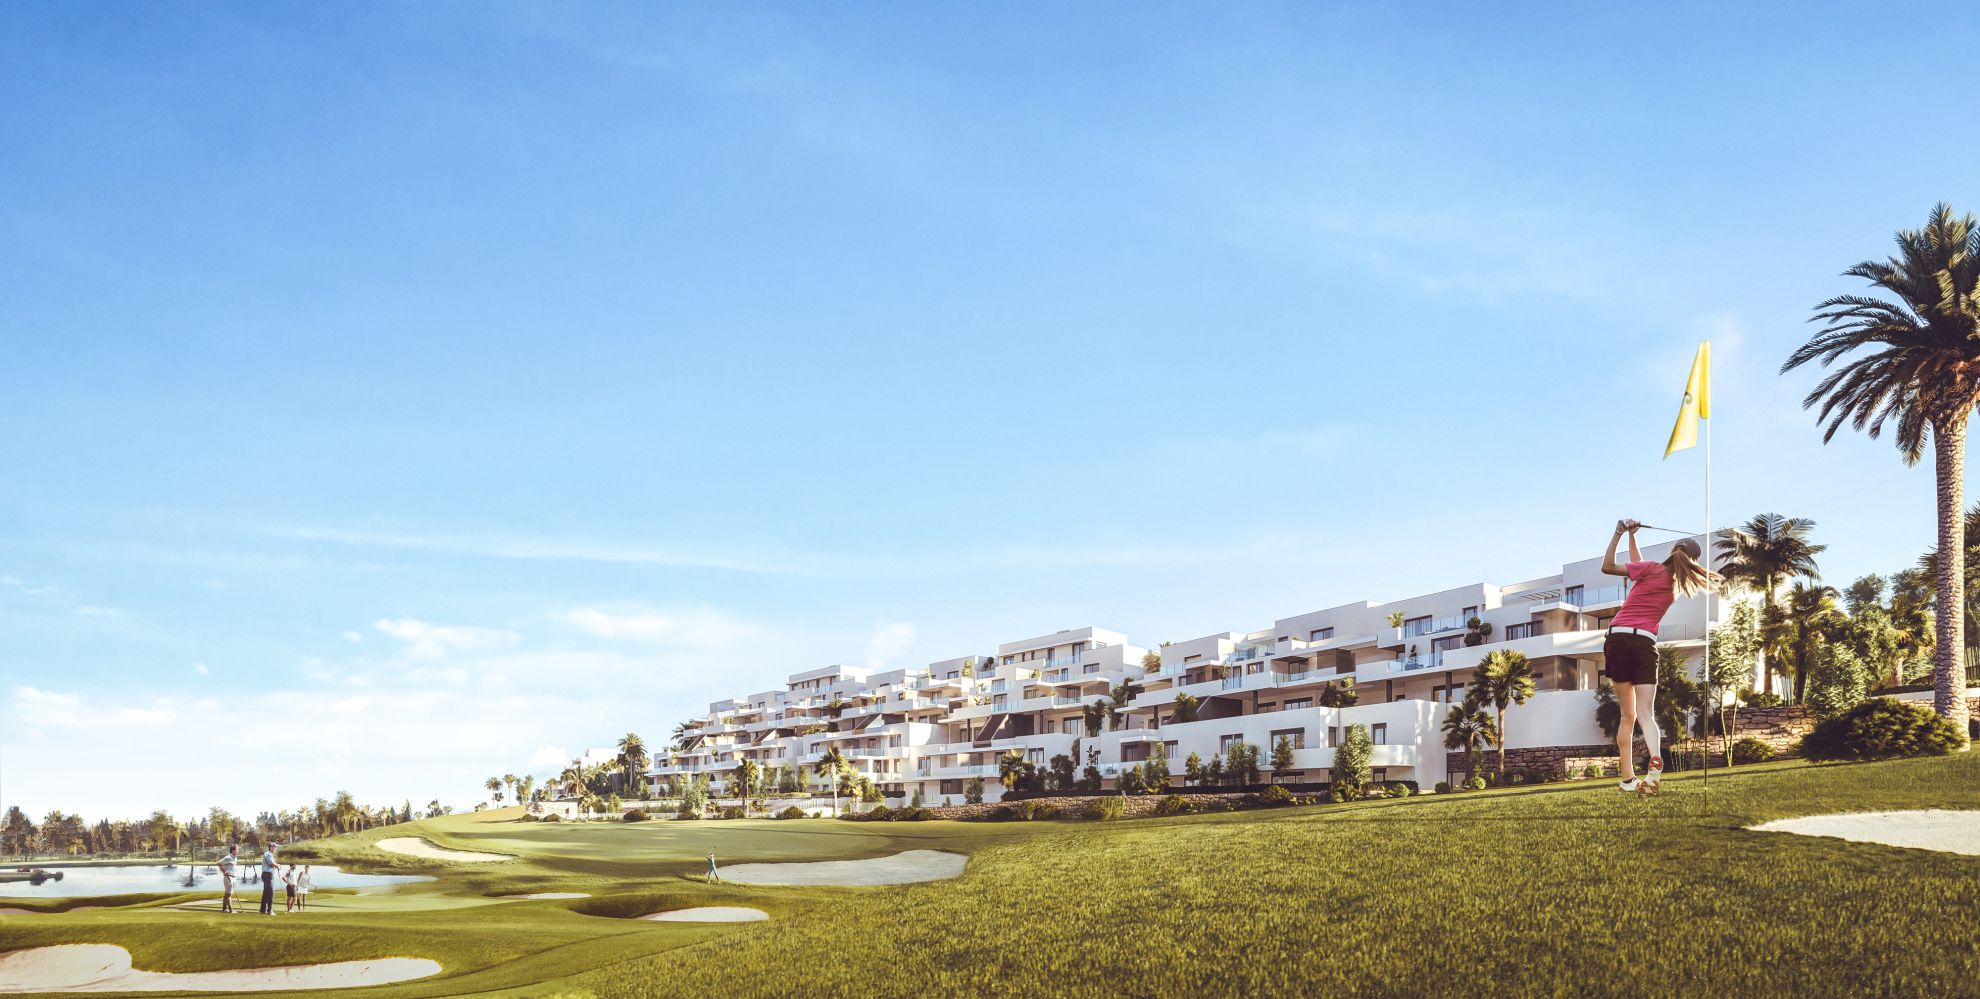 Apartments with views over golf courses in Estepona 2